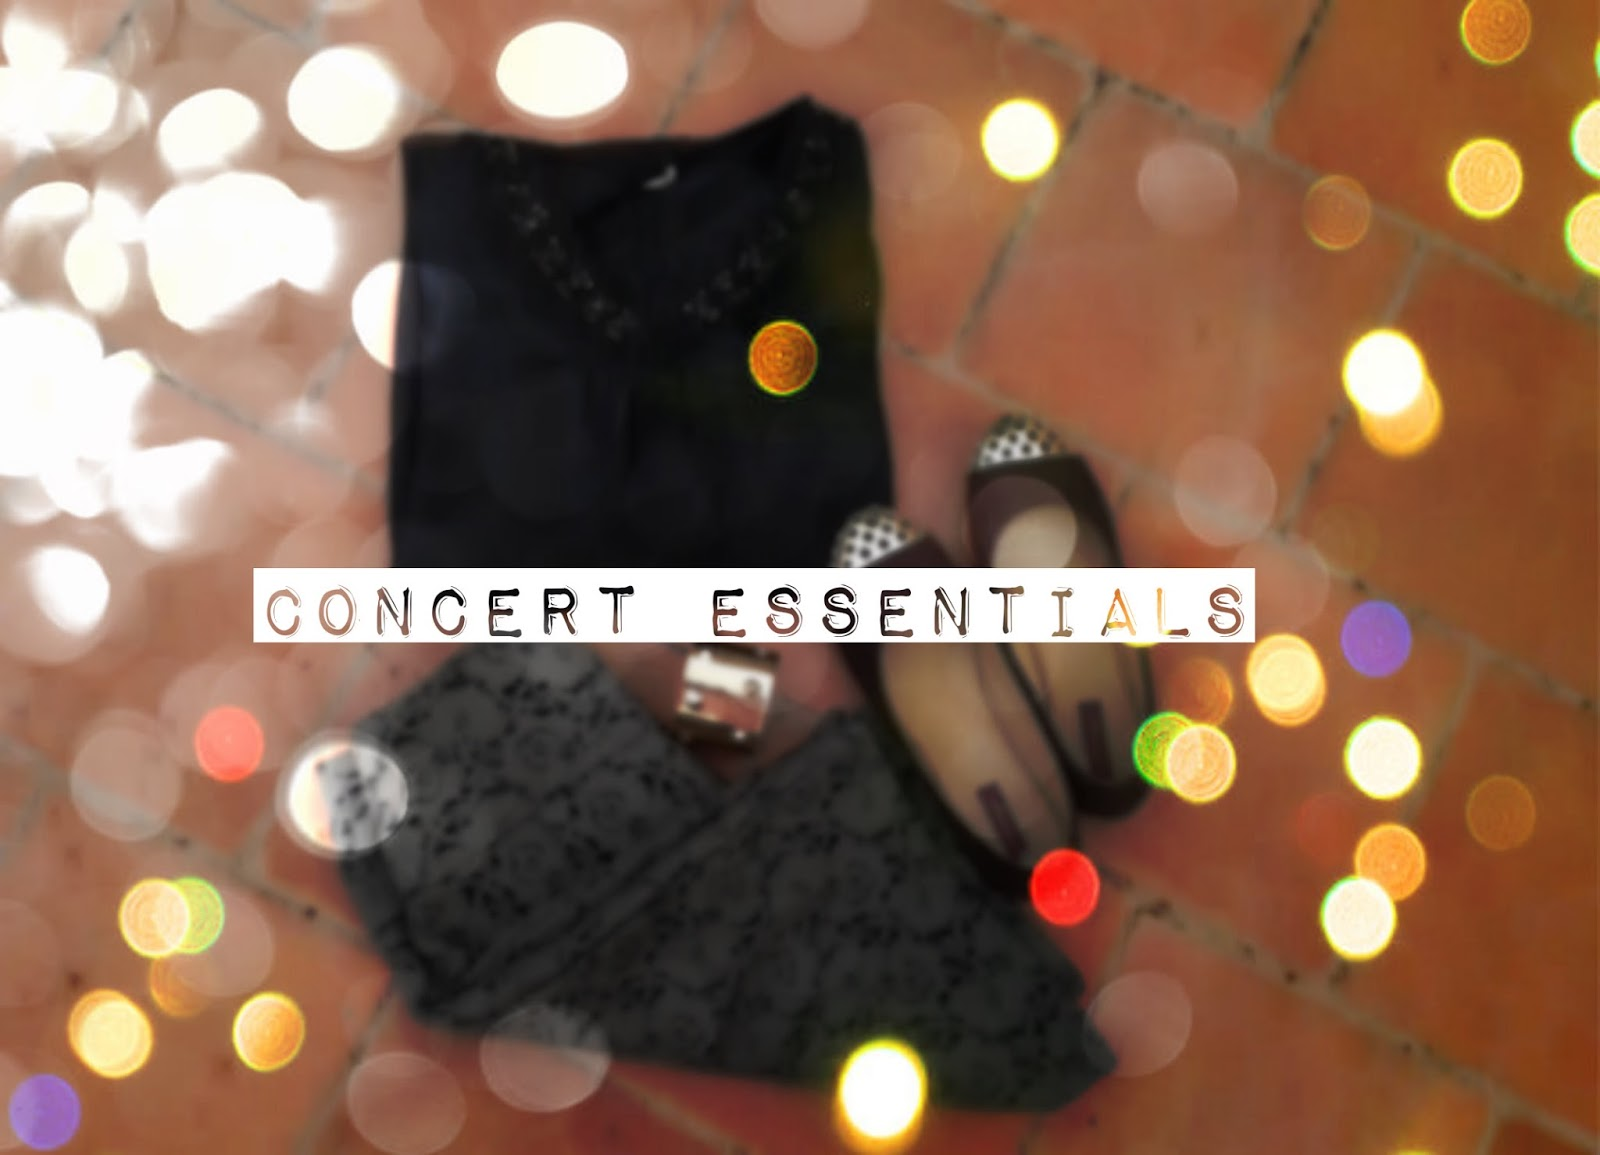 Concert outfit tips